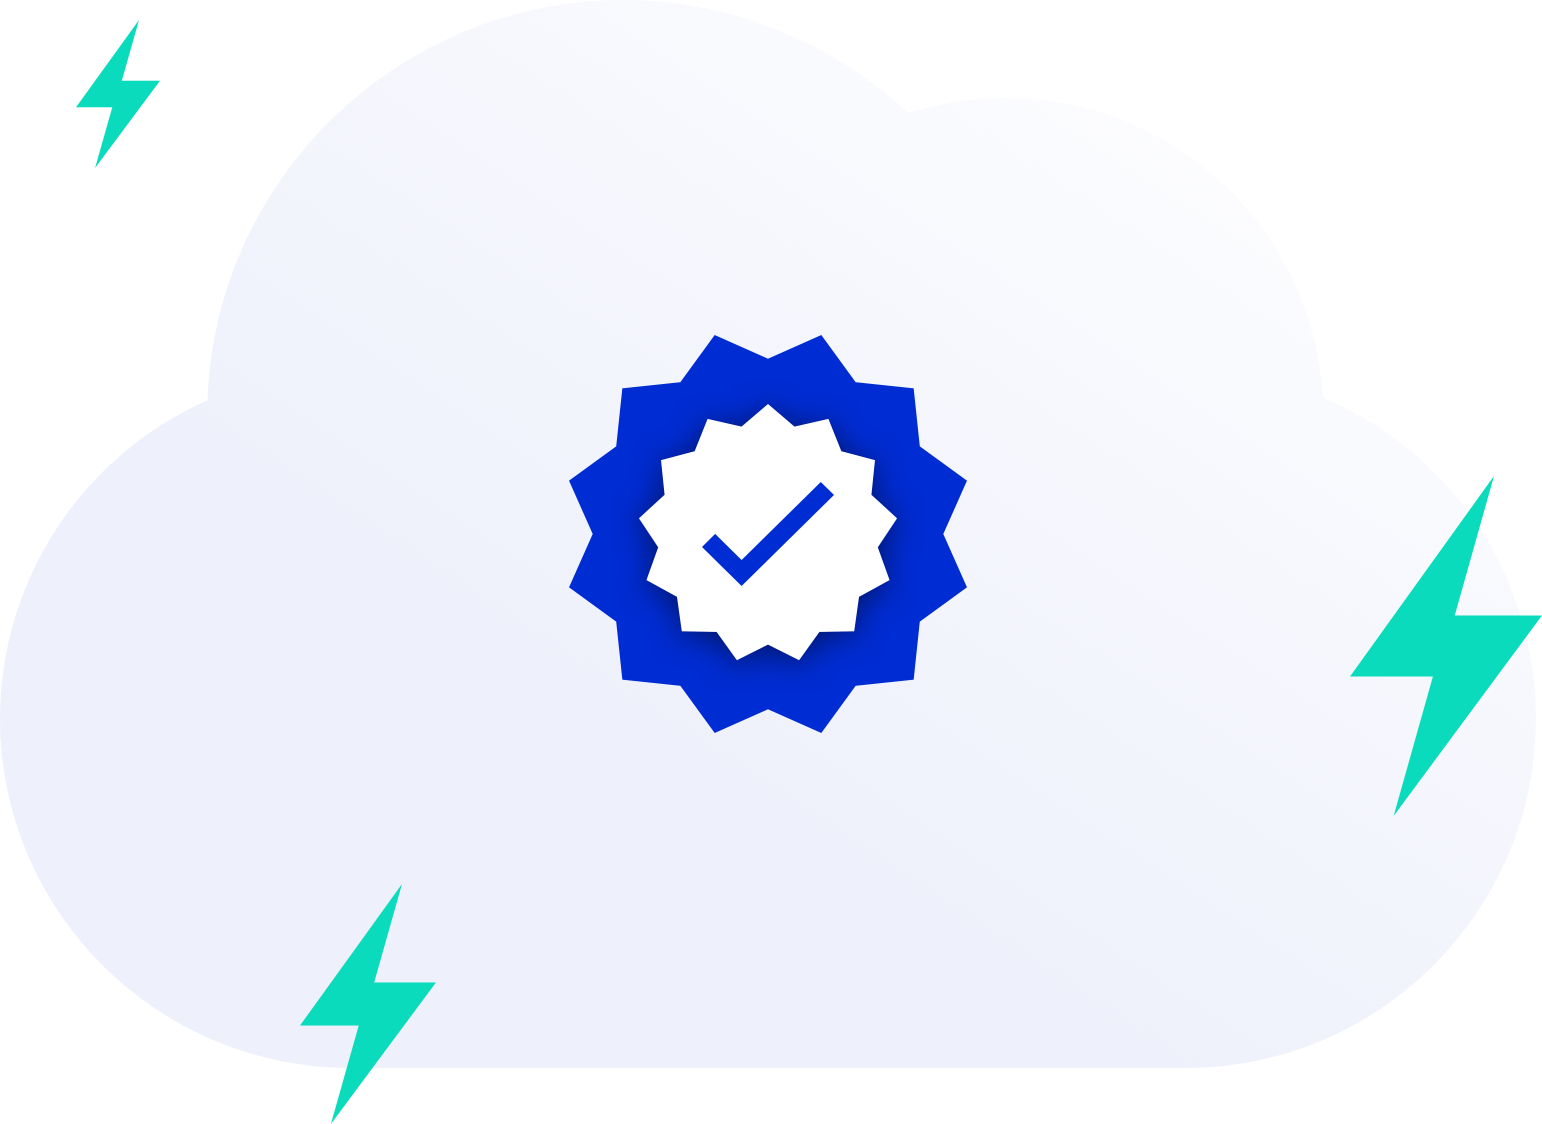 Kubernetes GPU Cloud by Cloudalize is maintained and managed by experts who built the platform.